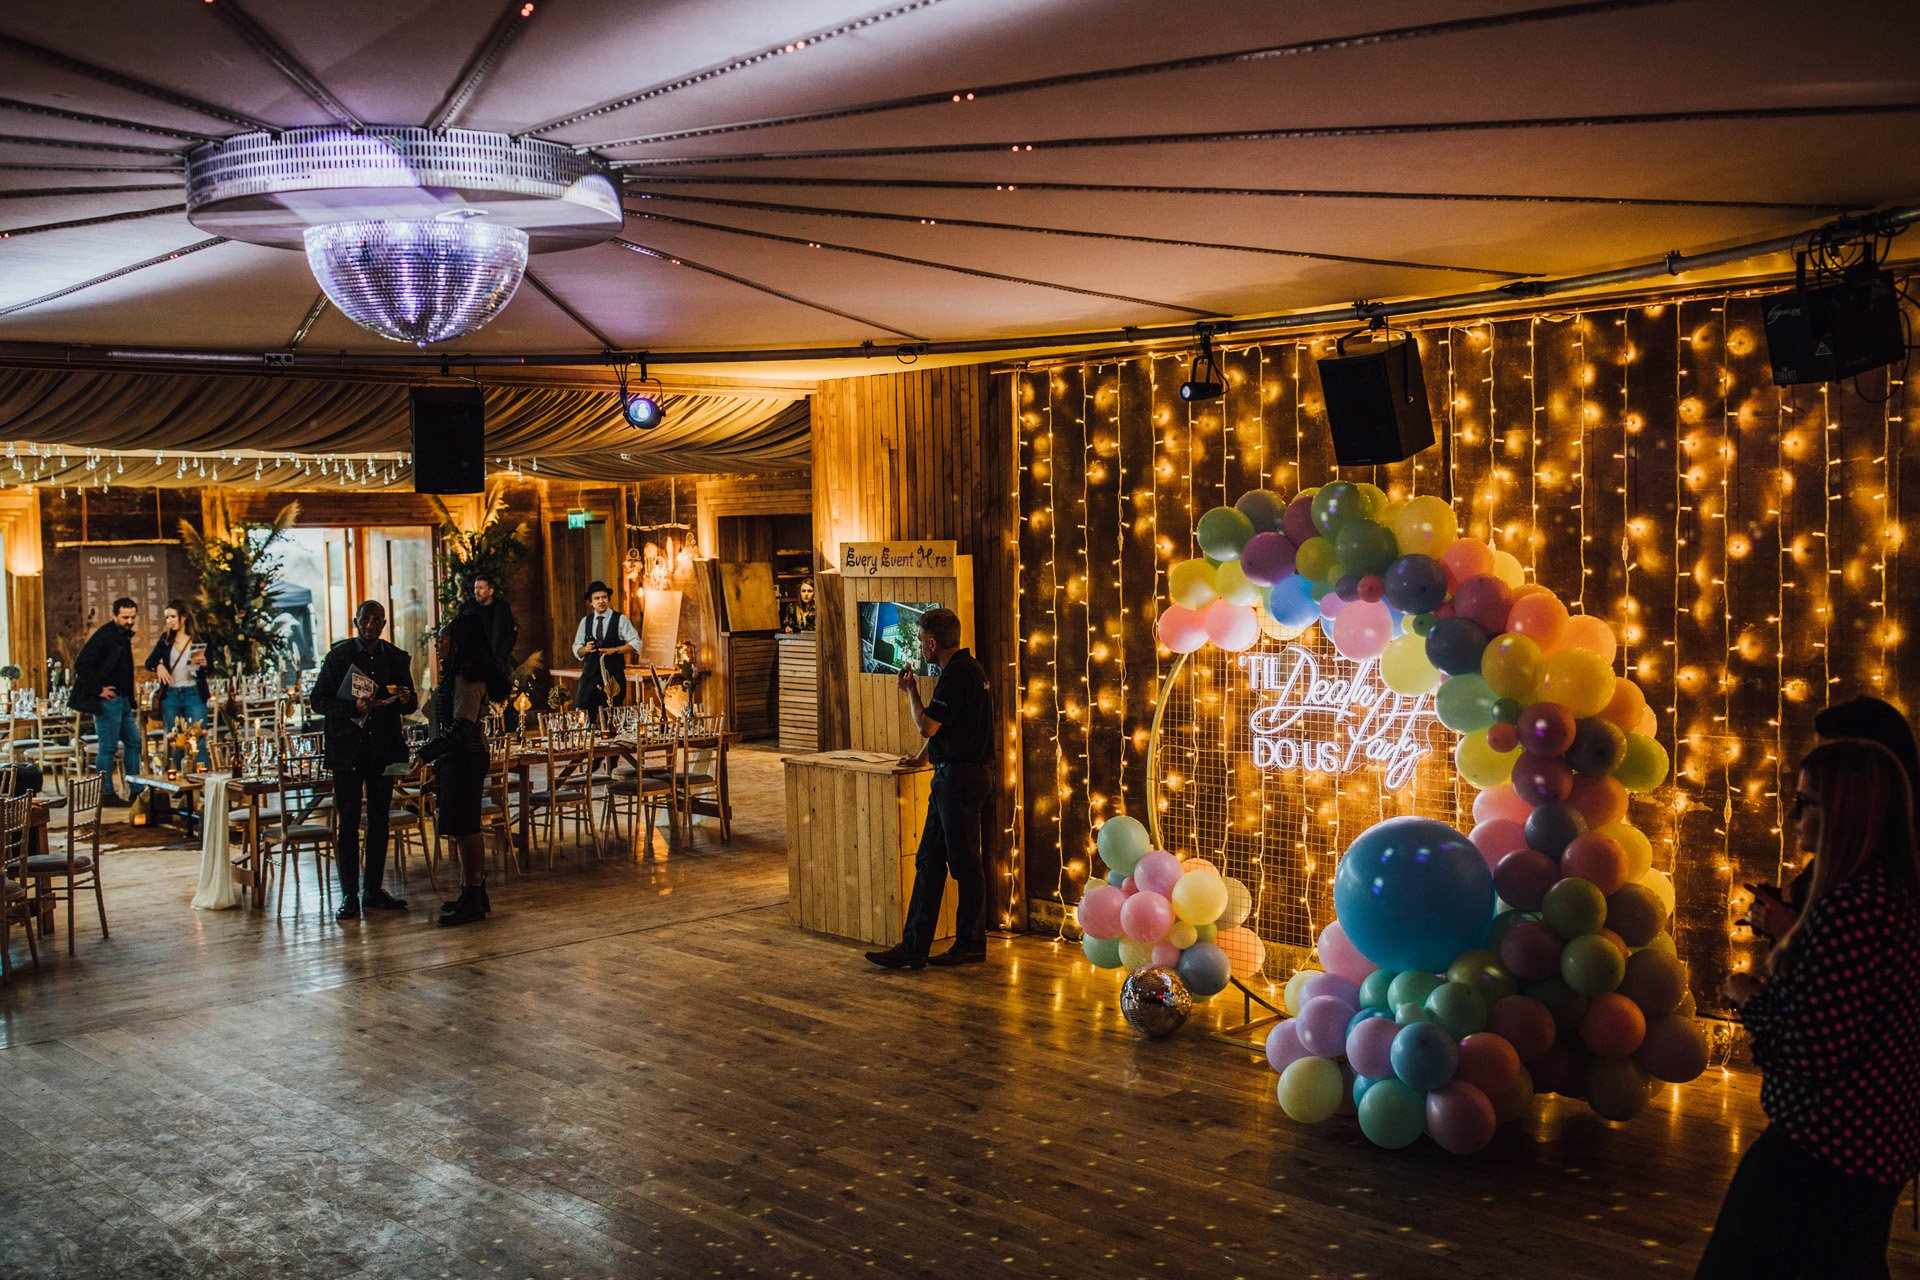 Disco lights and balloons for party wedding inspiration in The Gillyflower at Elmore Court